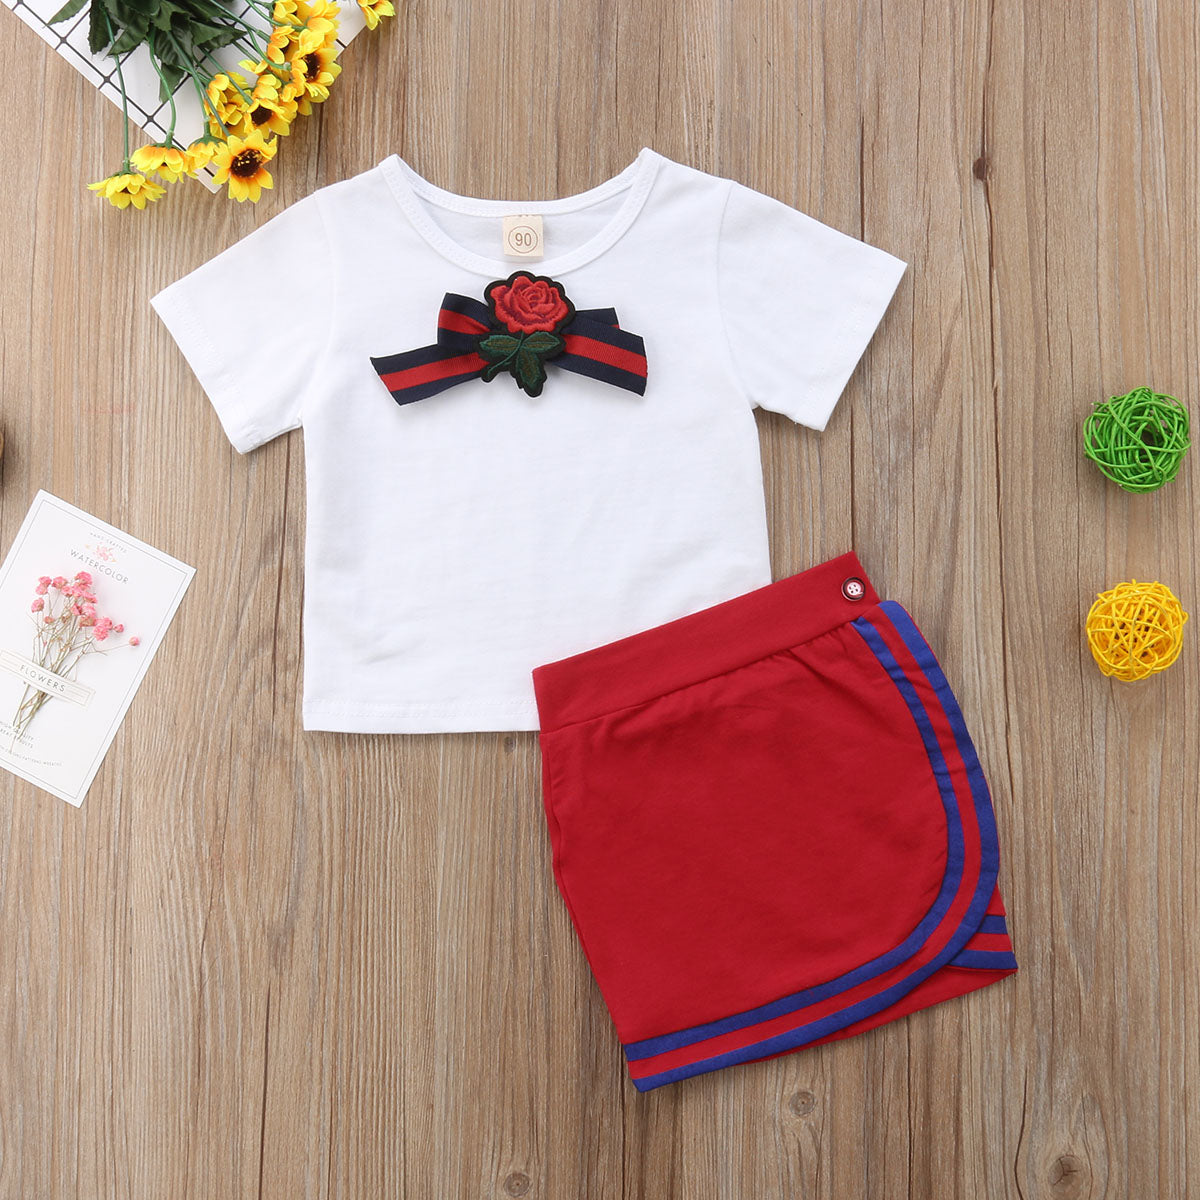 2PCS Toddler Kids Baby Girl Dress Outfits Tops Shirt Bow Short Skirt Clothes Set